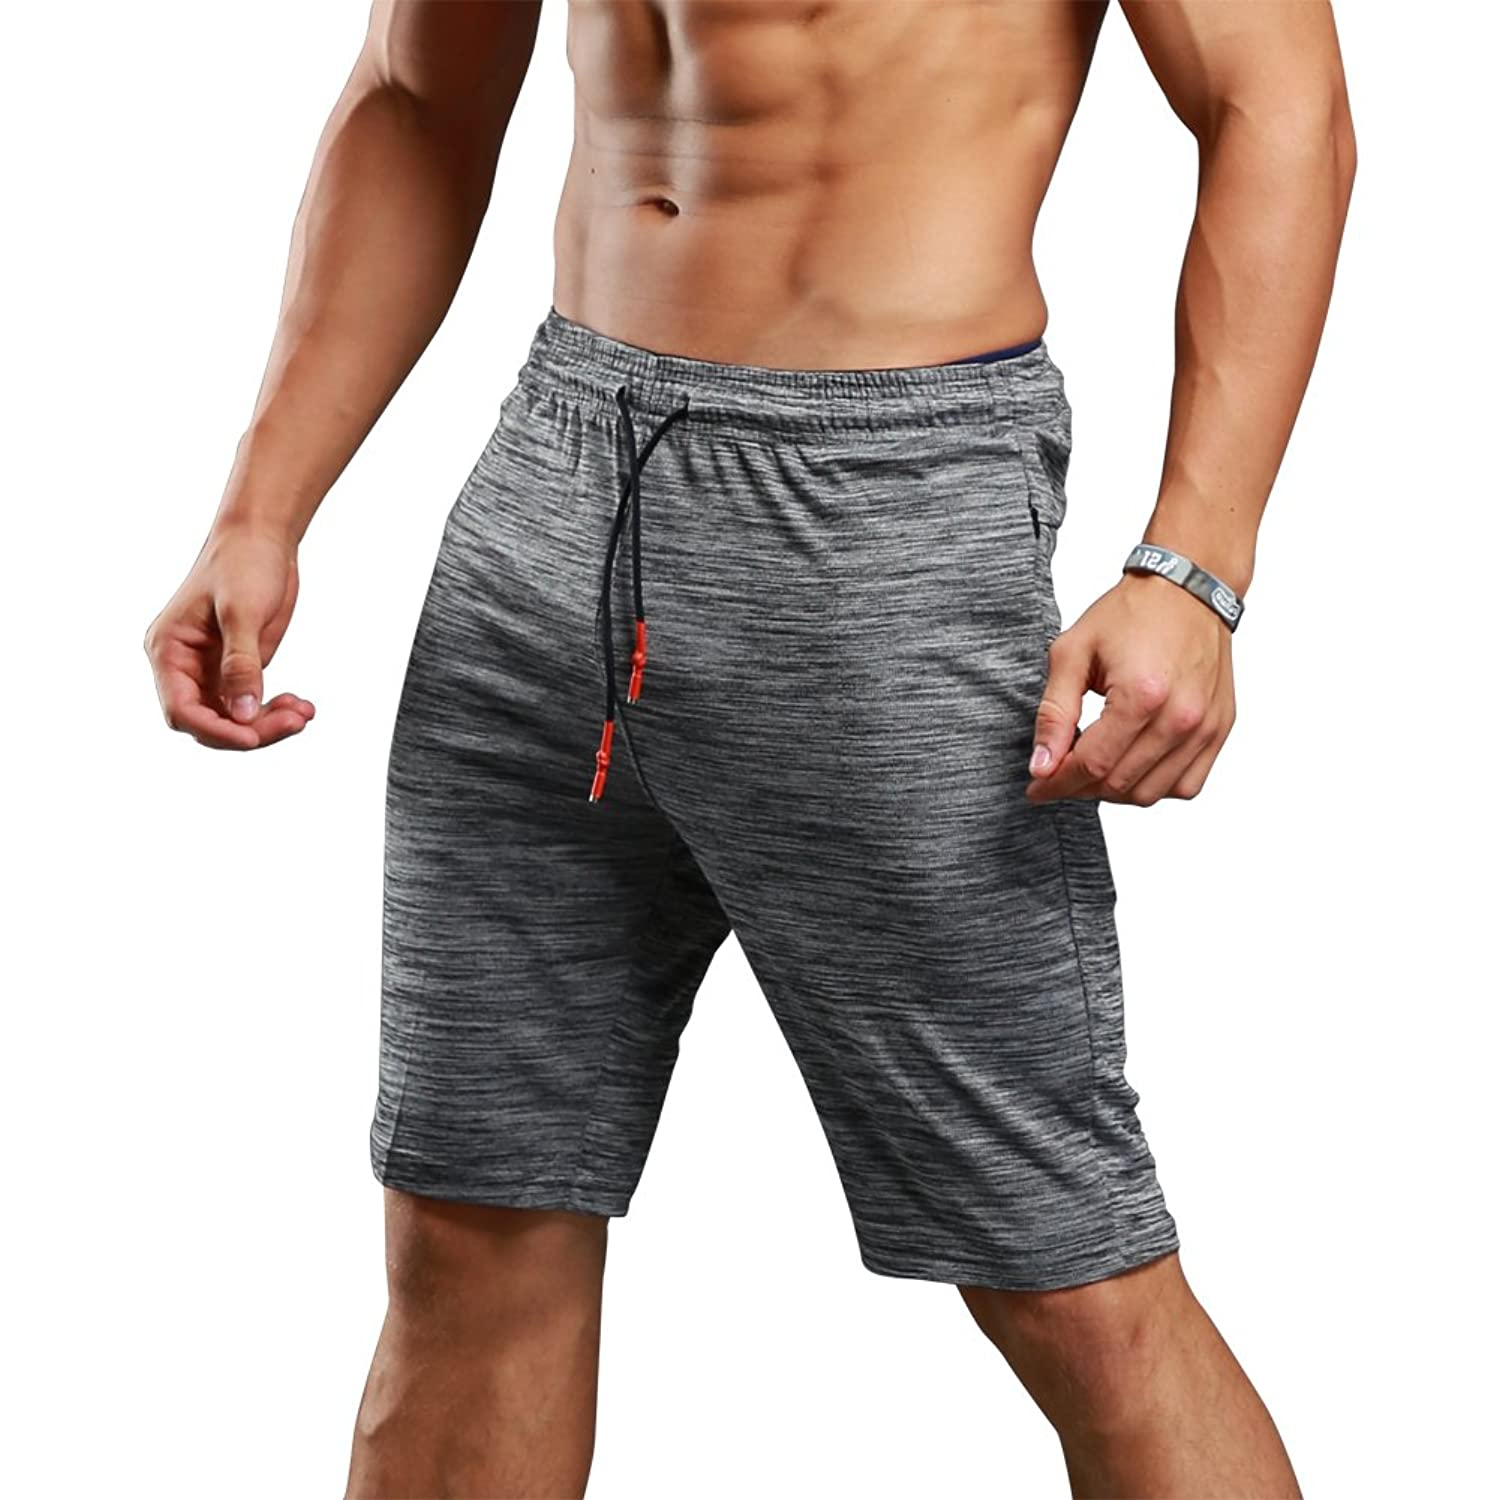 Gerlobal Men's Bodybuilding Gym Running Workout Shorts Active Training  Shorts